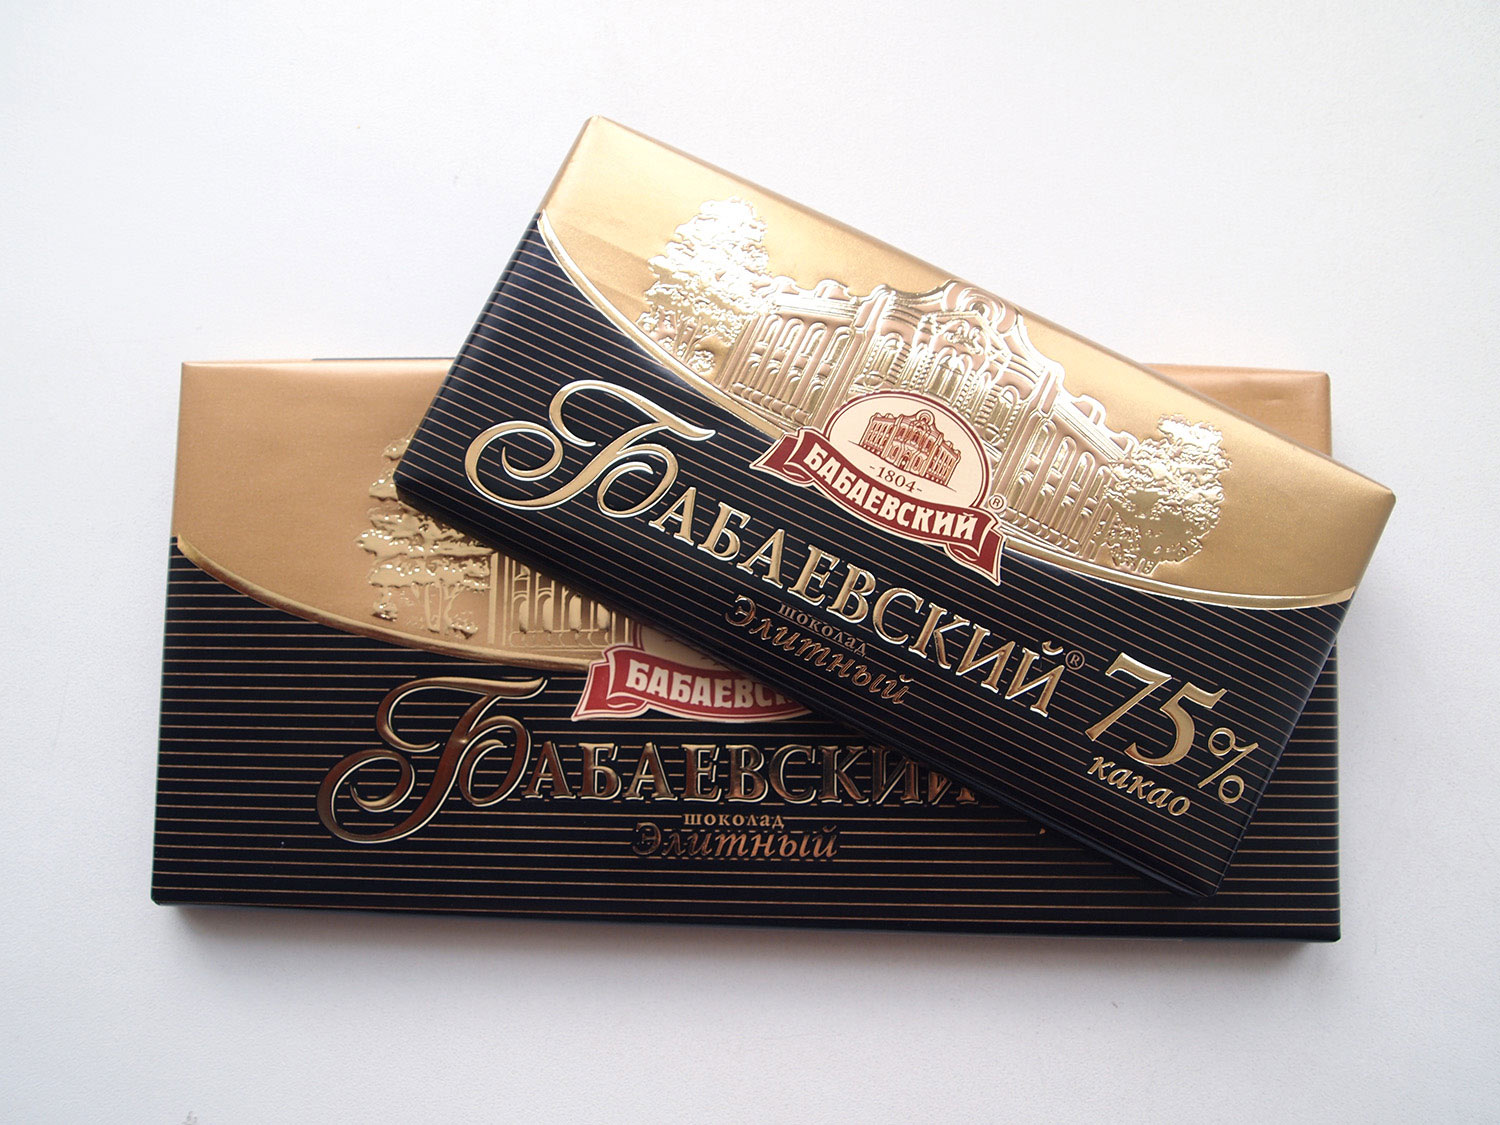 Russian-Babayevsky-dark-chocolate-bar.jpg